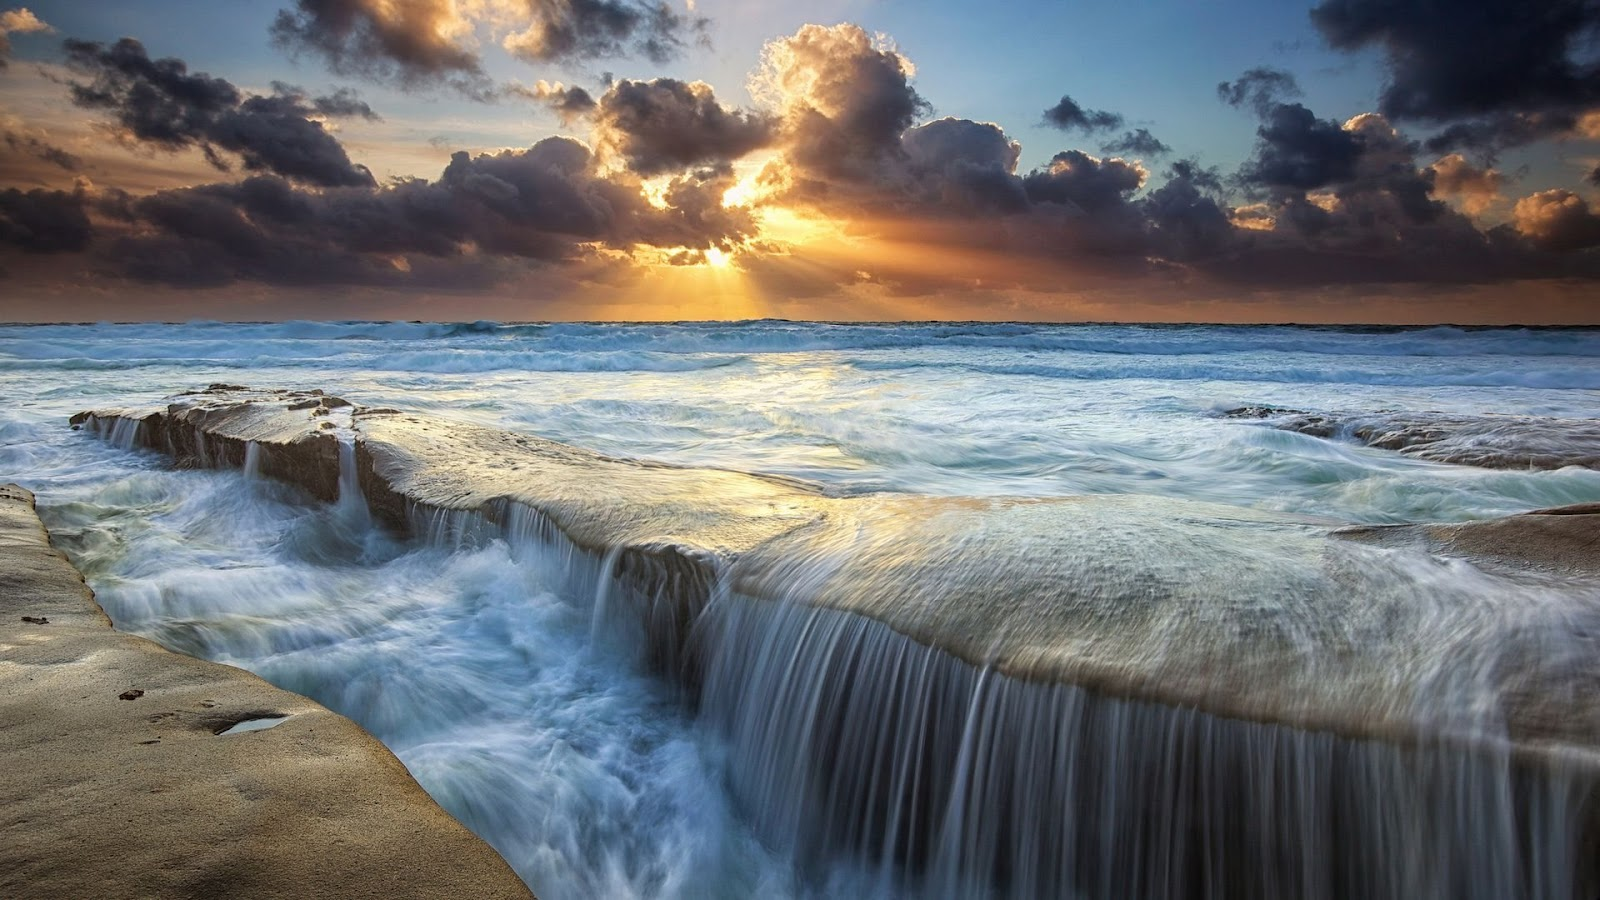 Tisotit sunset over the ocean wallpaper for Amazing ocean images